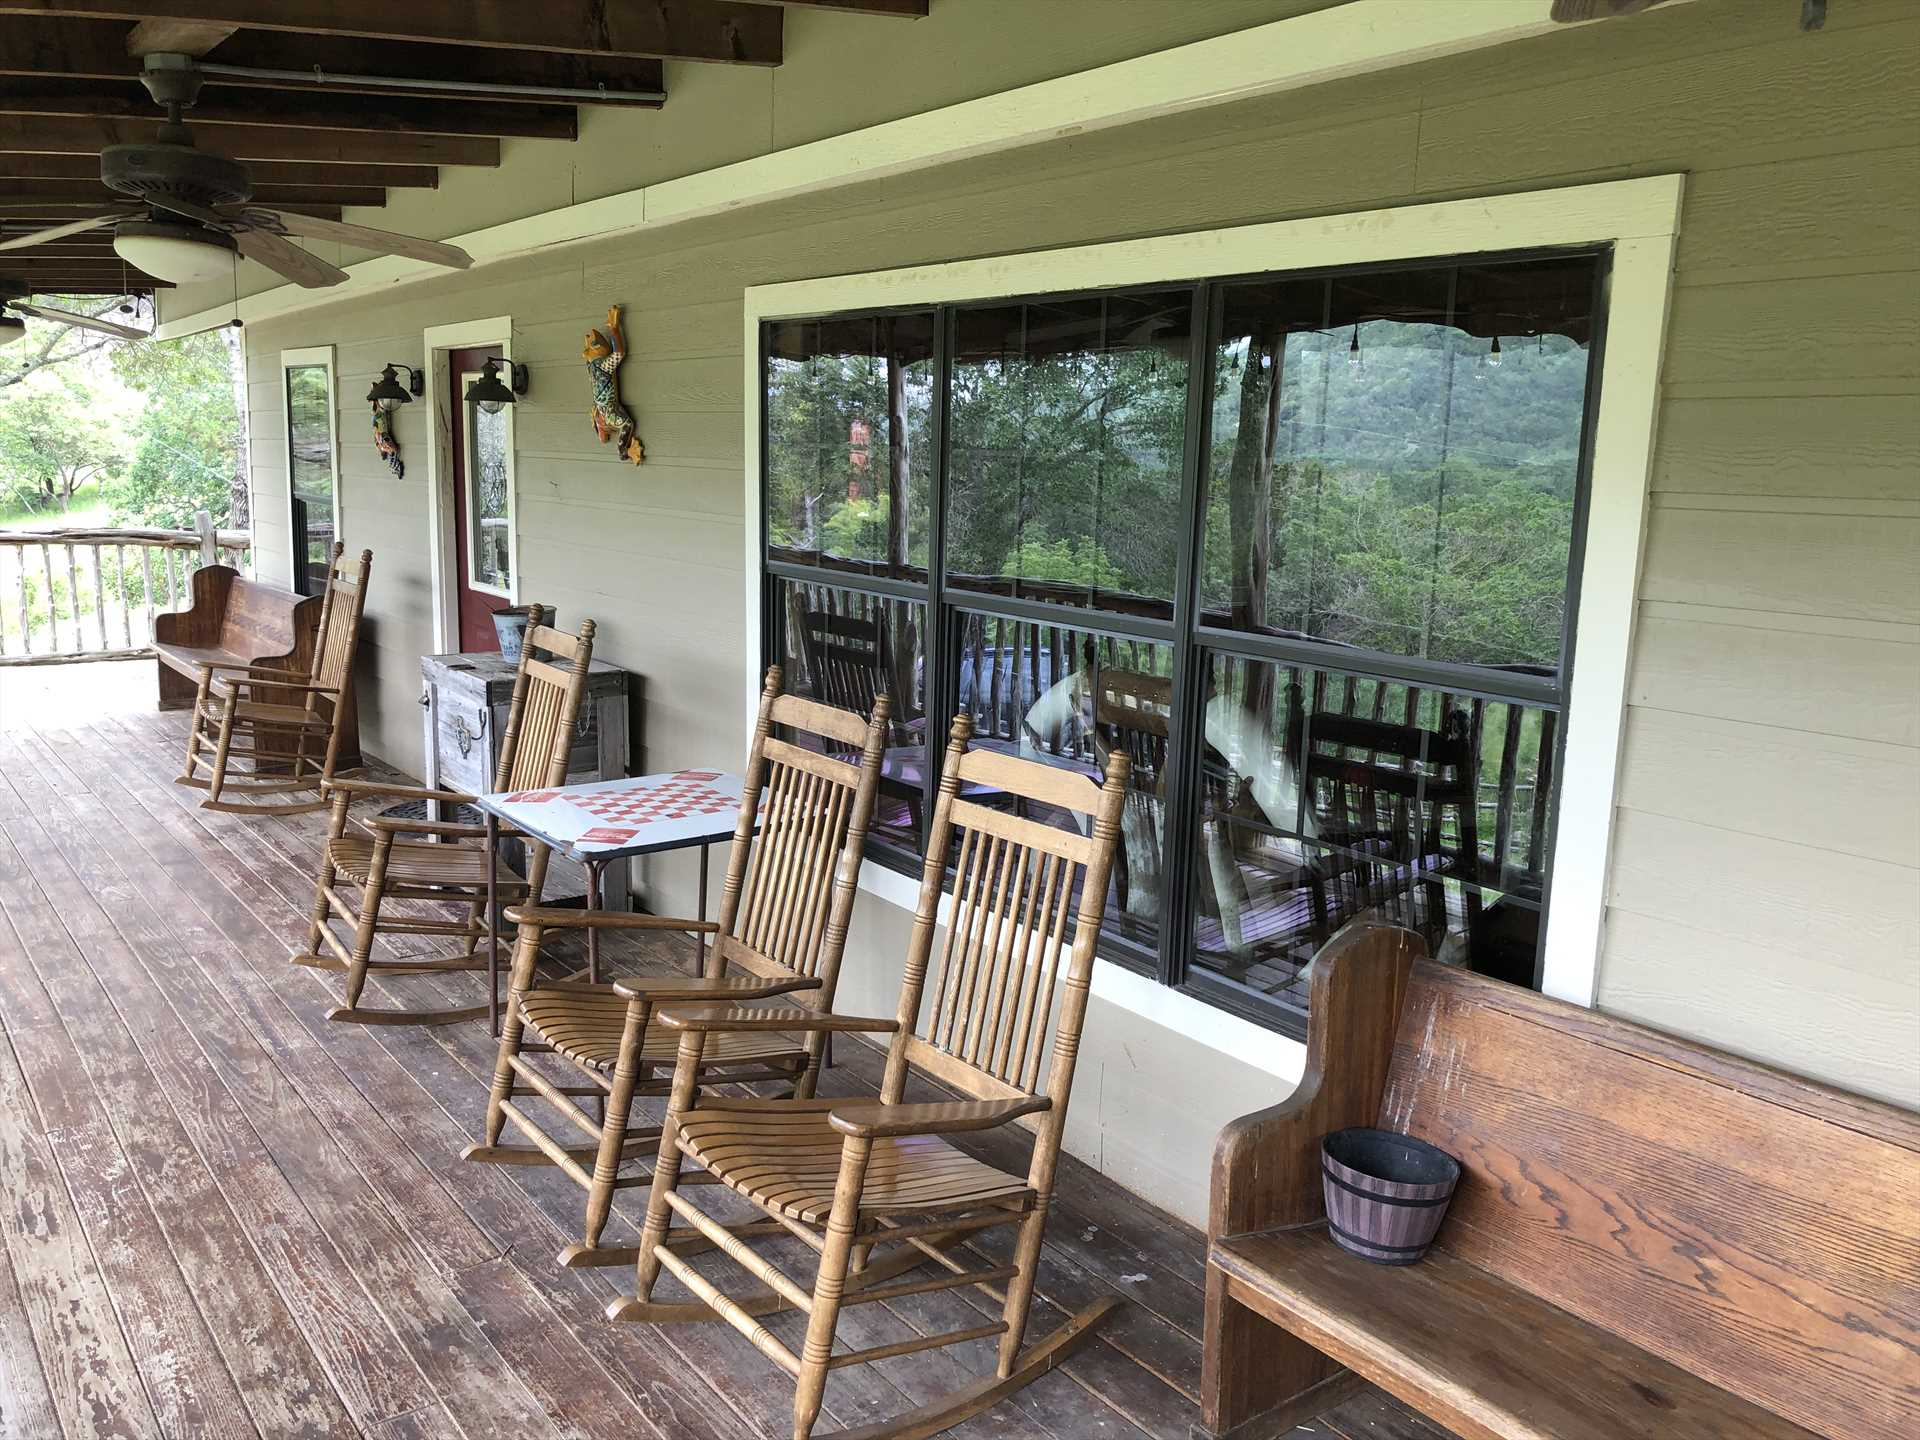 A glass of wine, a rocking chair, and sweet mountain breezes all await you on the shaded country porch!